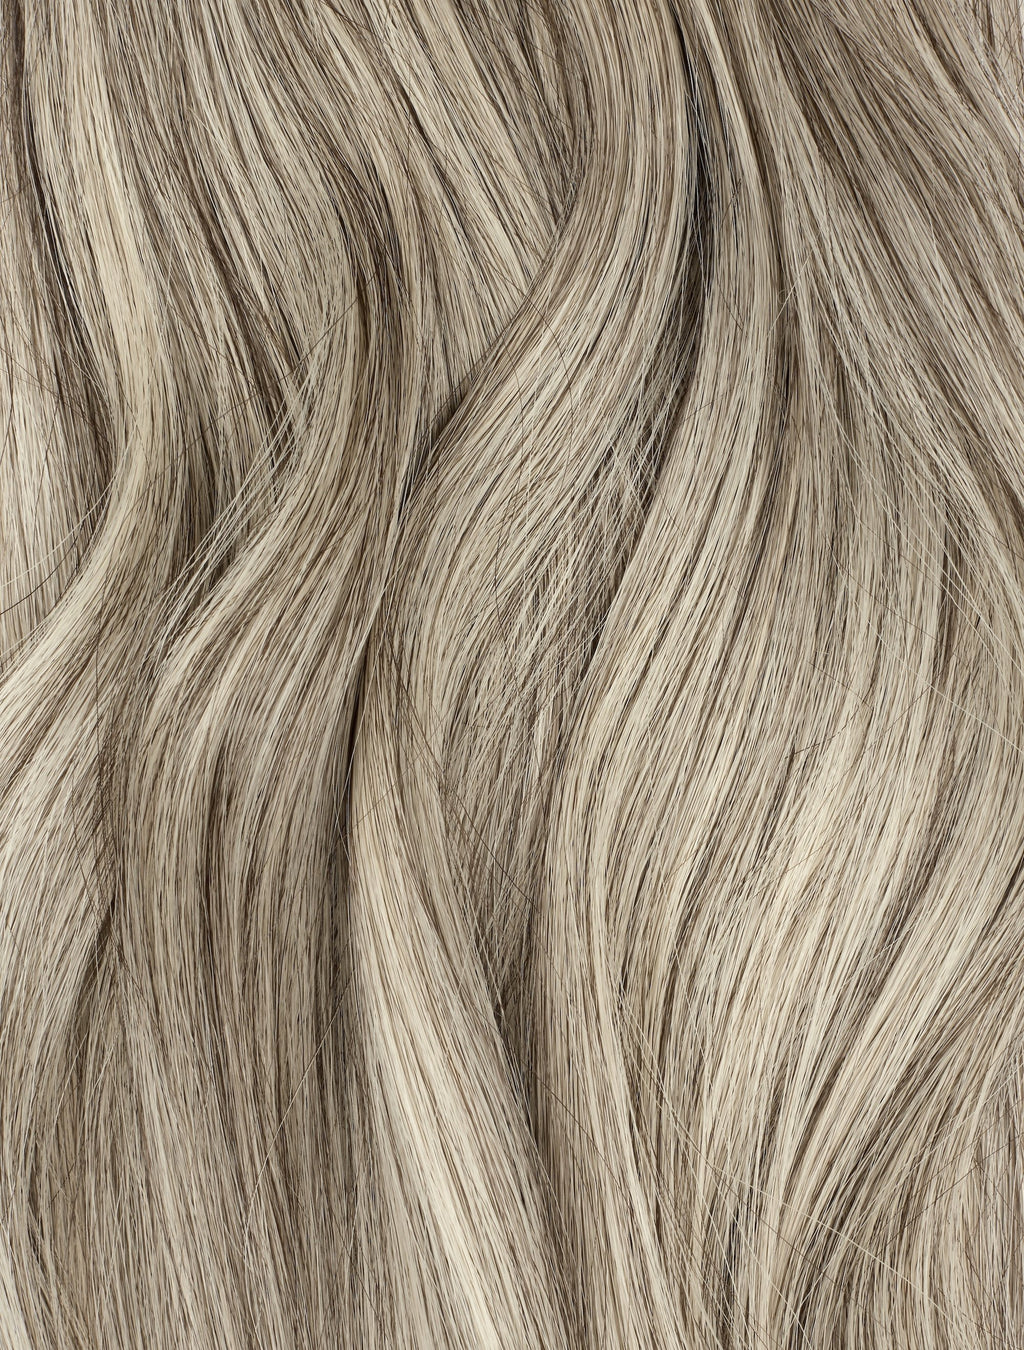 "Highlight - (Dark Brown #2 / White Blonde #60B) 22"" 100g- ON BACKORDER"